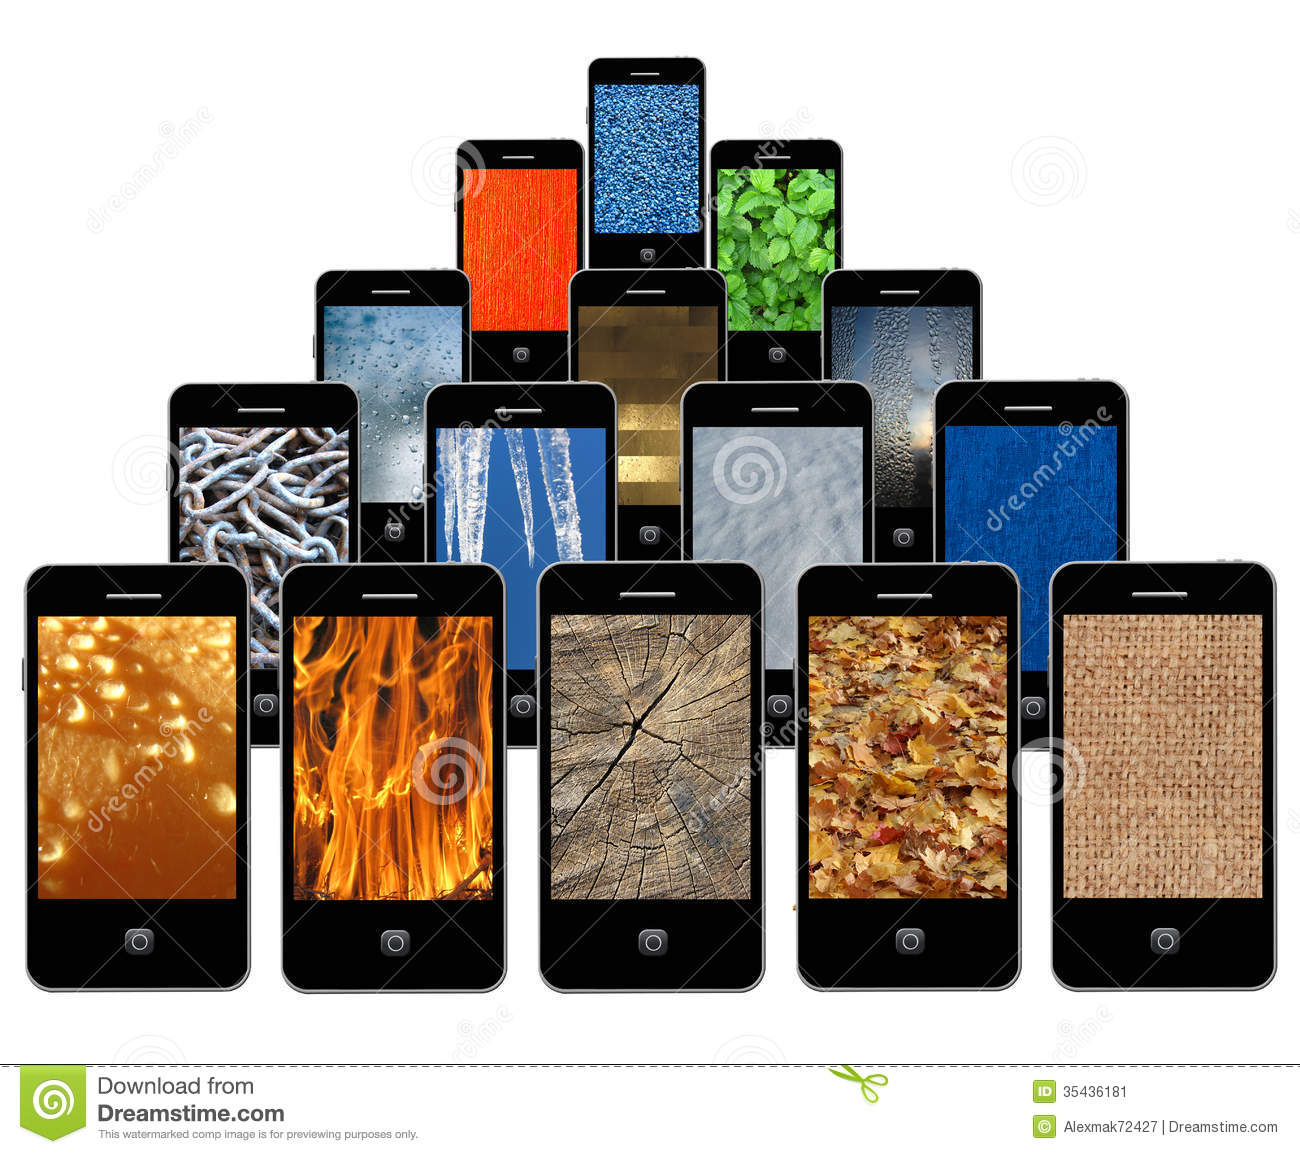 the modern uses of mobile phones Mobile phones have become a ubiquitous part of modern life it is estimated that there are over five billion cell phones currently in use, covering a large portion of the world's population.